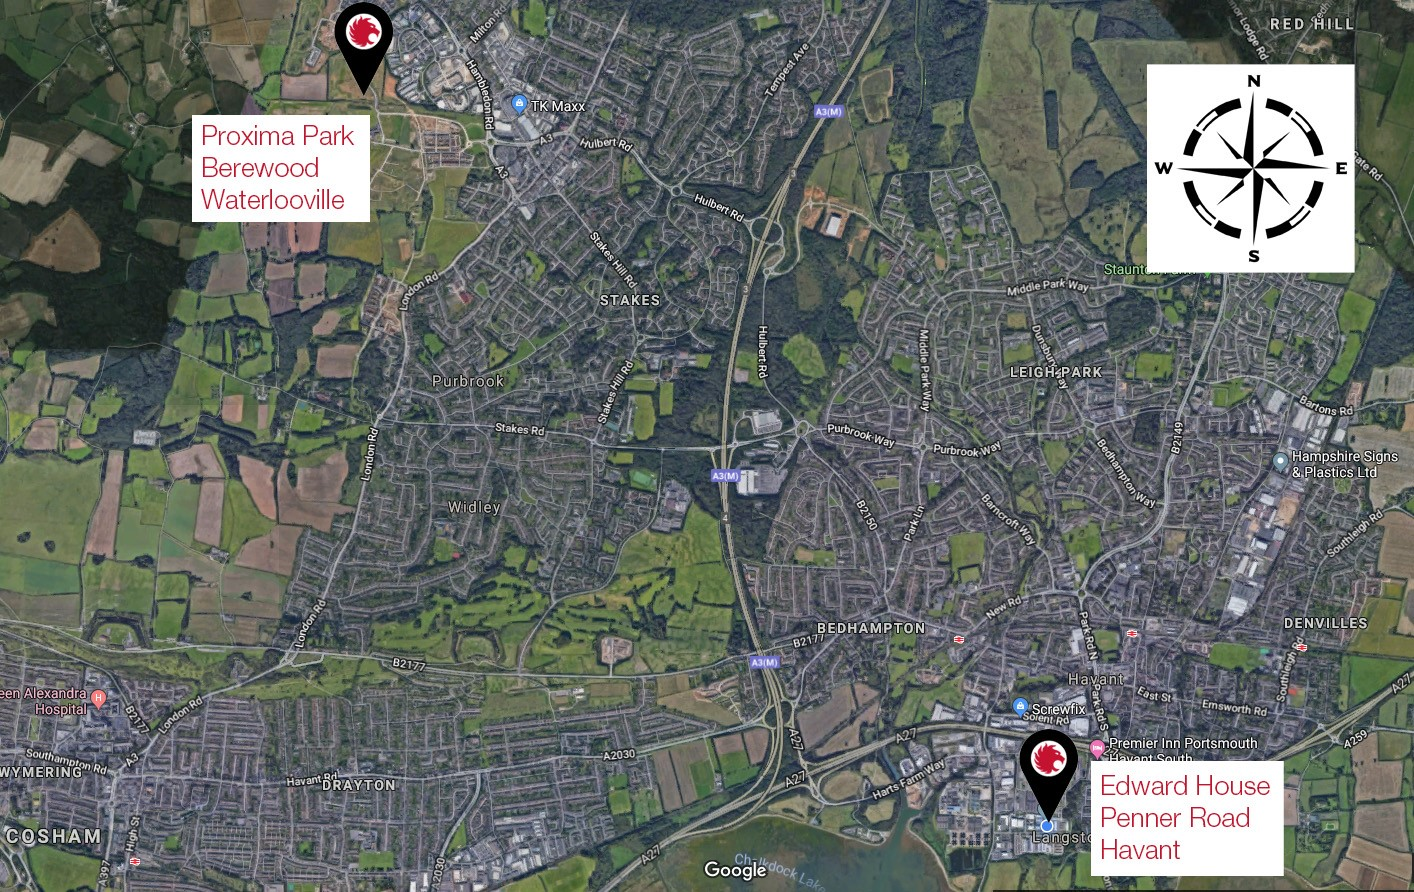 Map showing where Coopers Fire new offices will be in Waterlooville